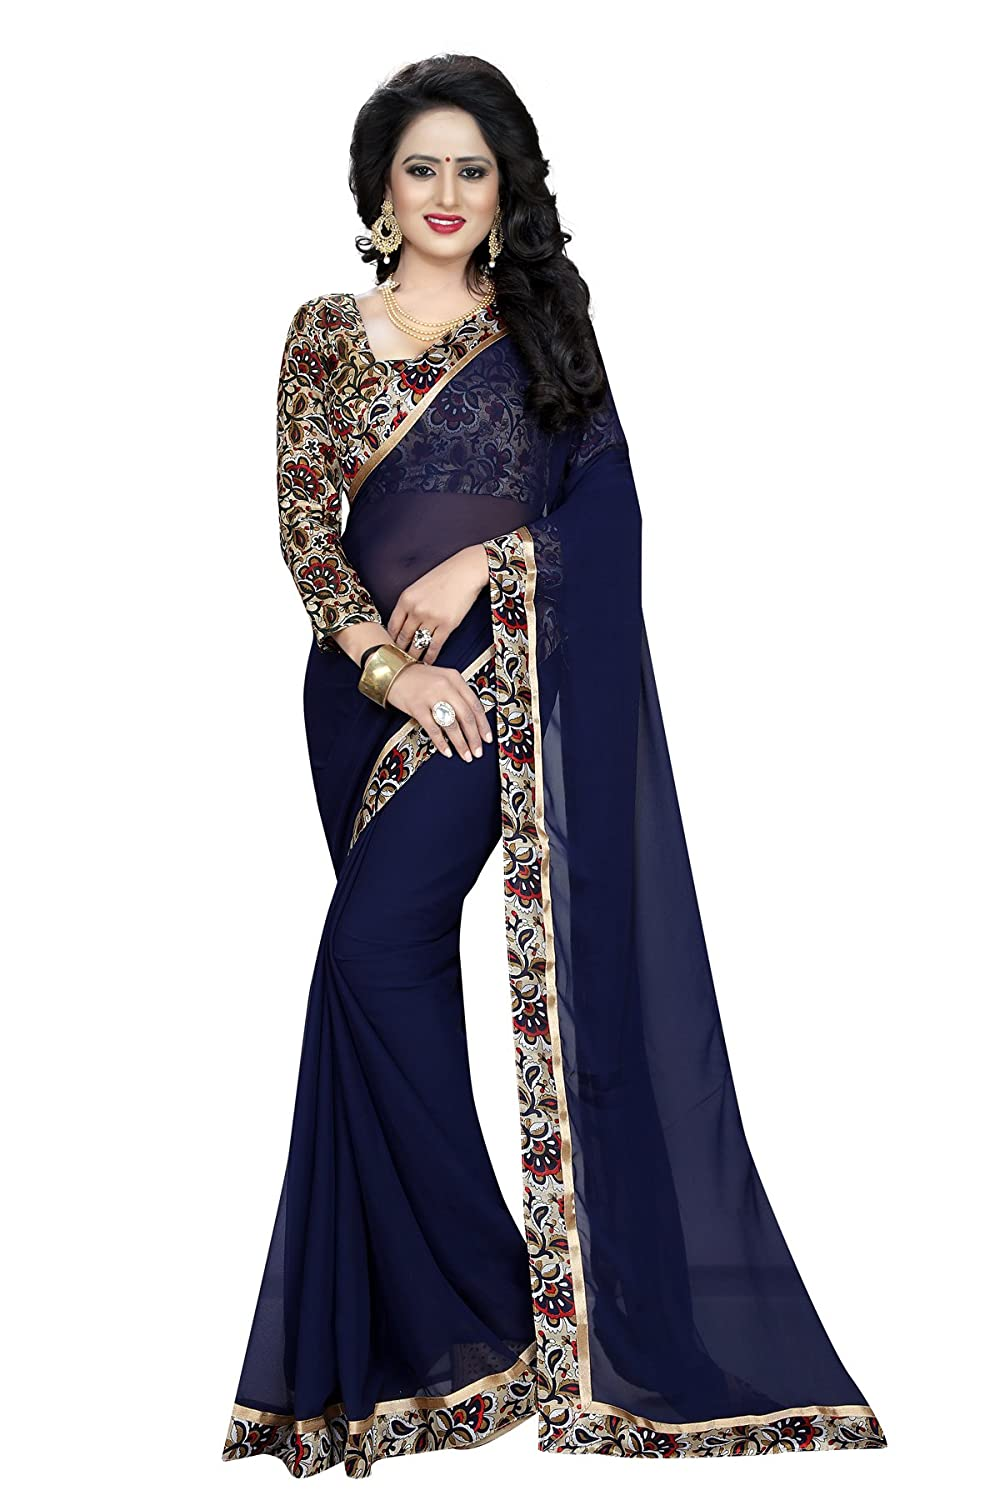 Maahik Sarees Women's Blue Georgette Saree With Blouse Piece